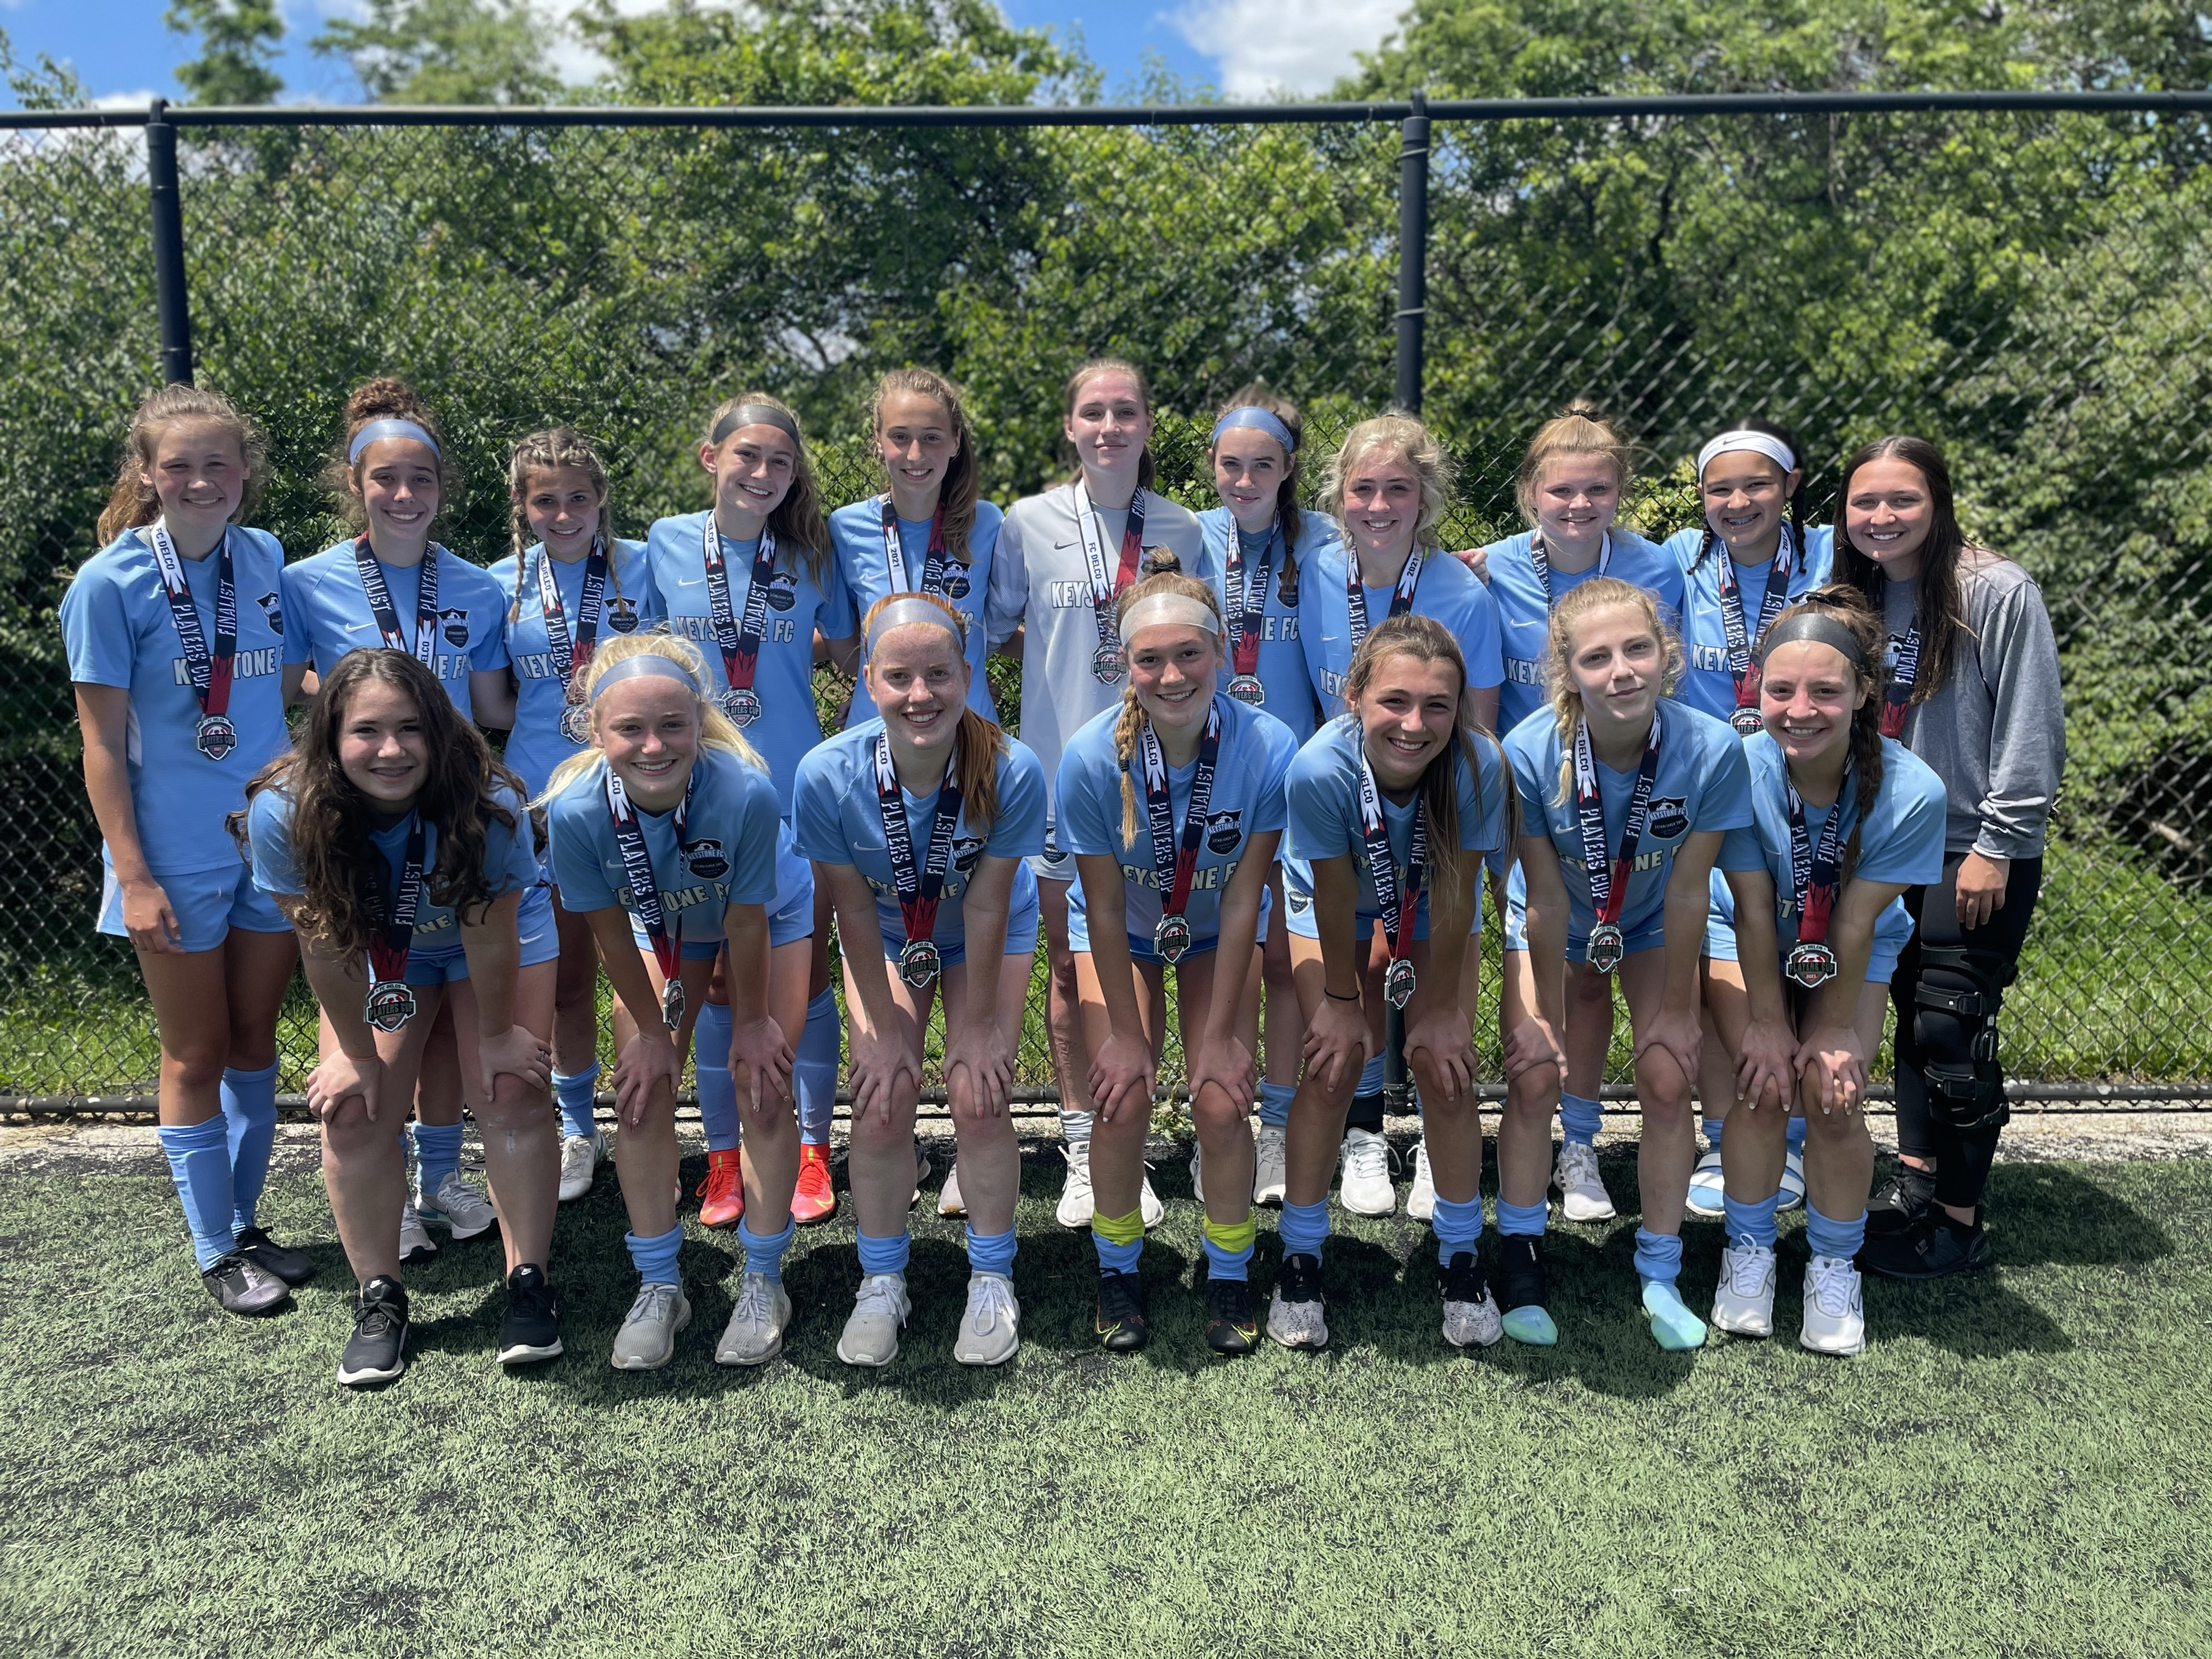 Premier 06G Finalists at Players Cup